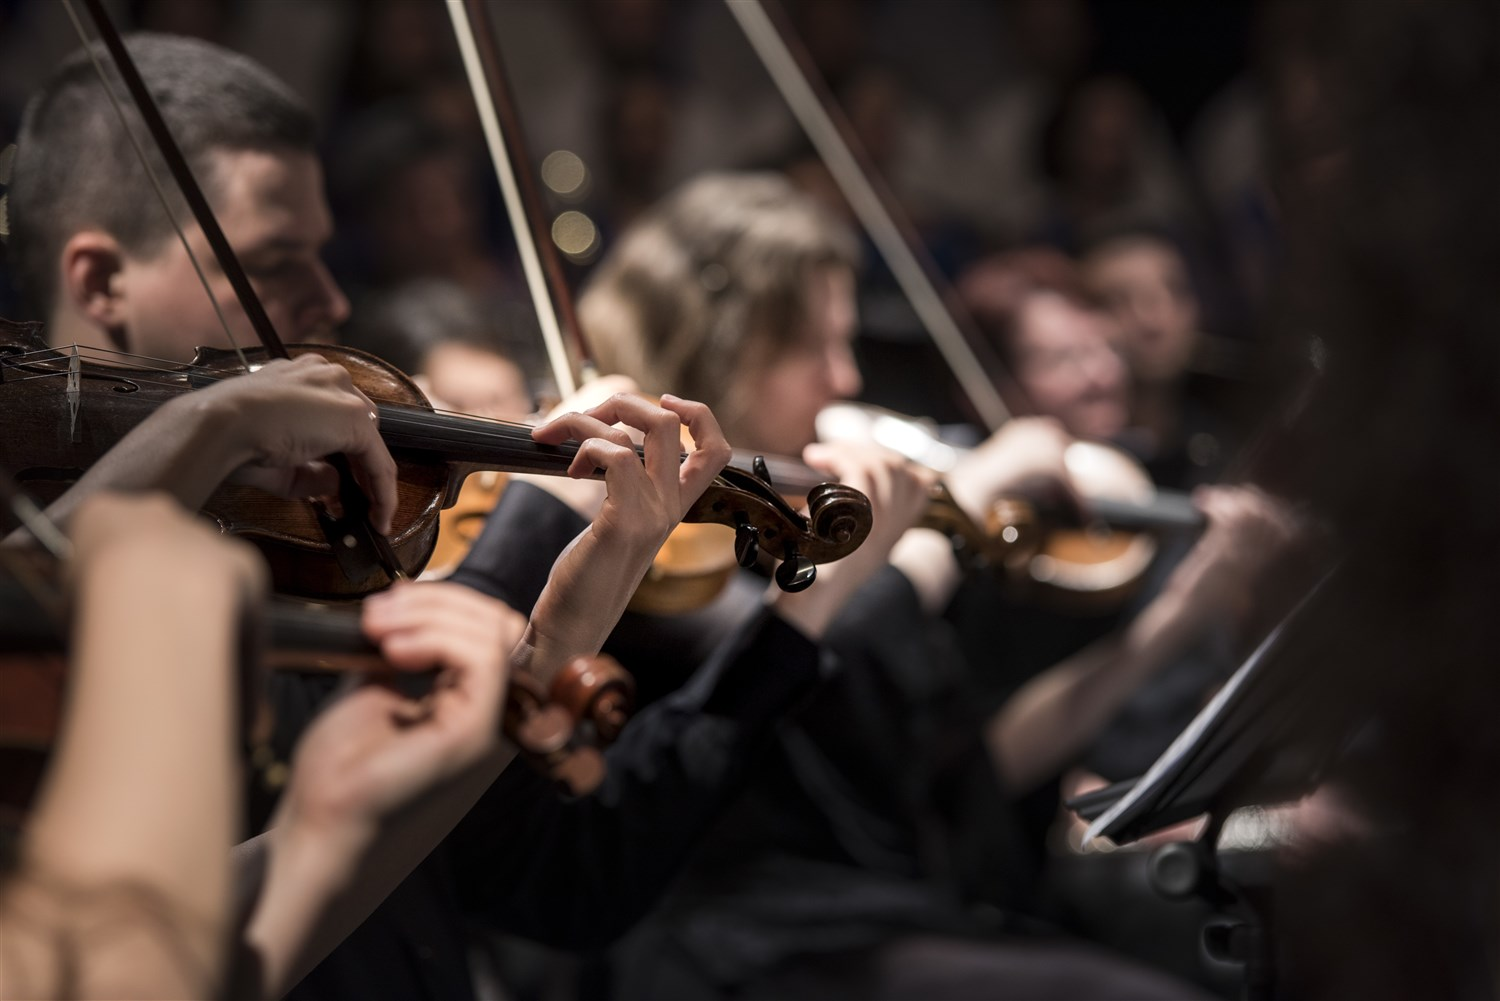 Classical music is a rich part of SLC life, with frequent performances by the acclaimed Utah Symphony and Utah Opera. D reamstime